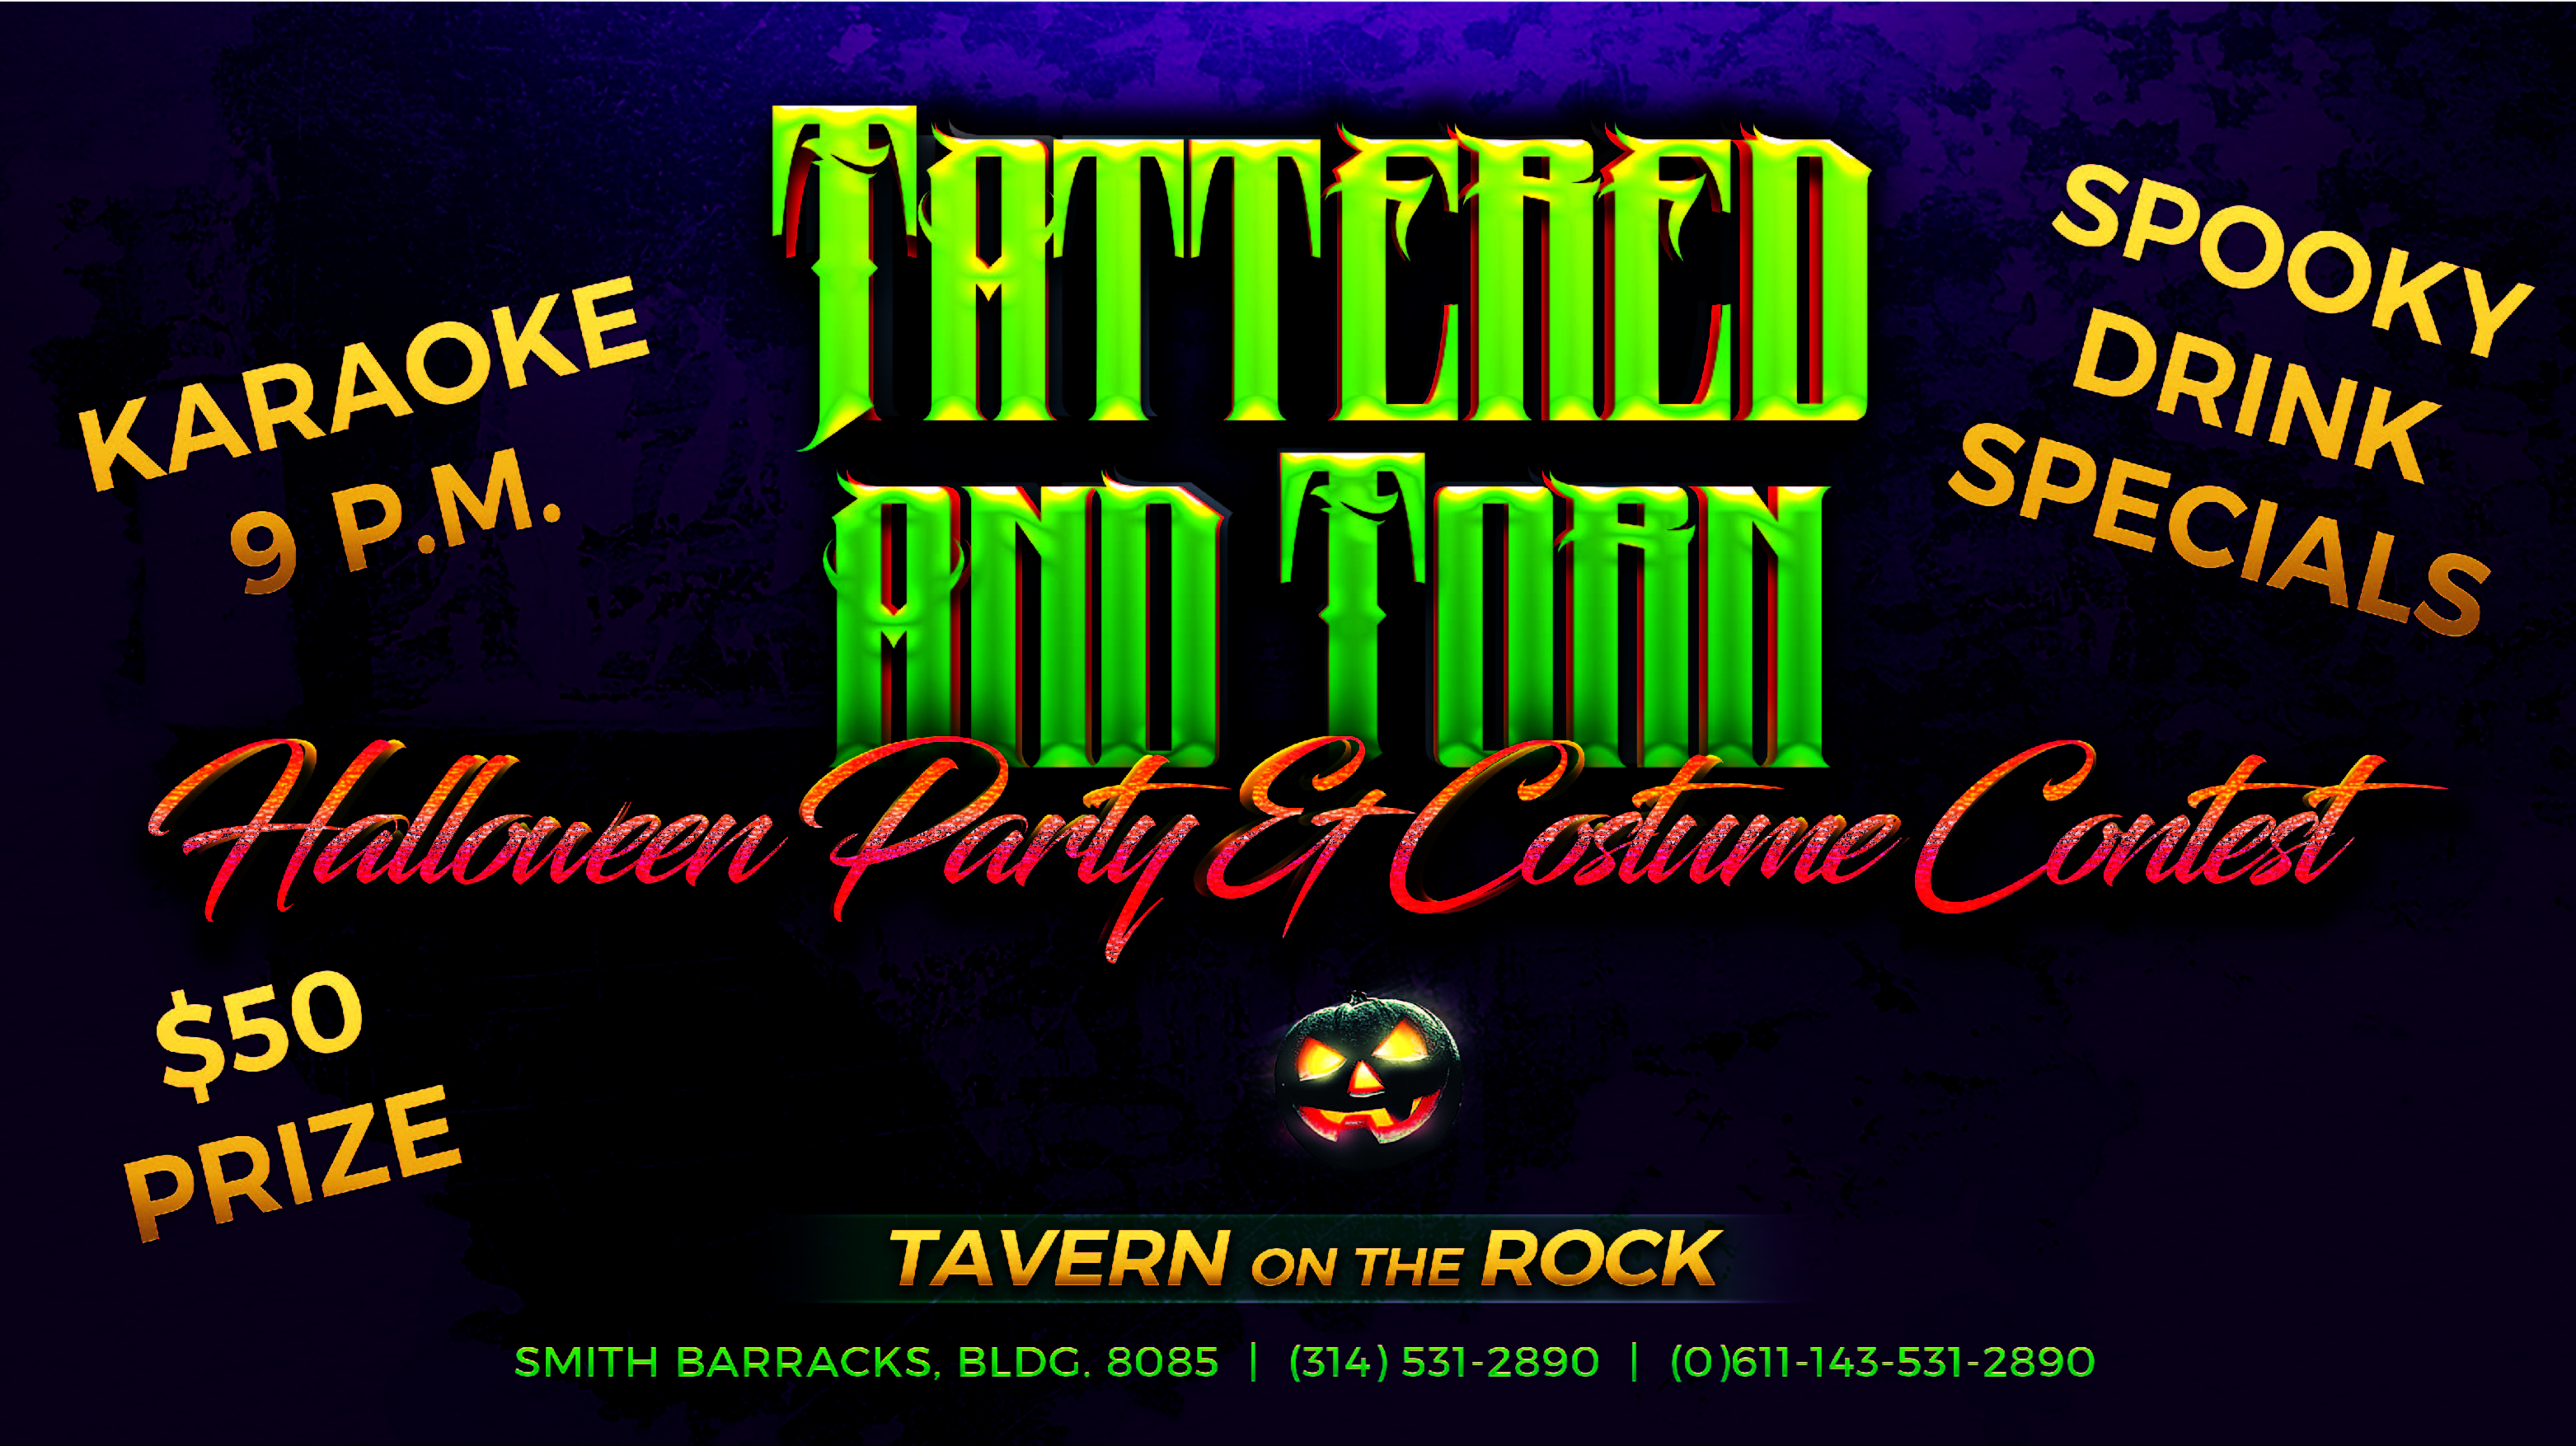 Tattered and Torn Halloween Costume Party & Contest